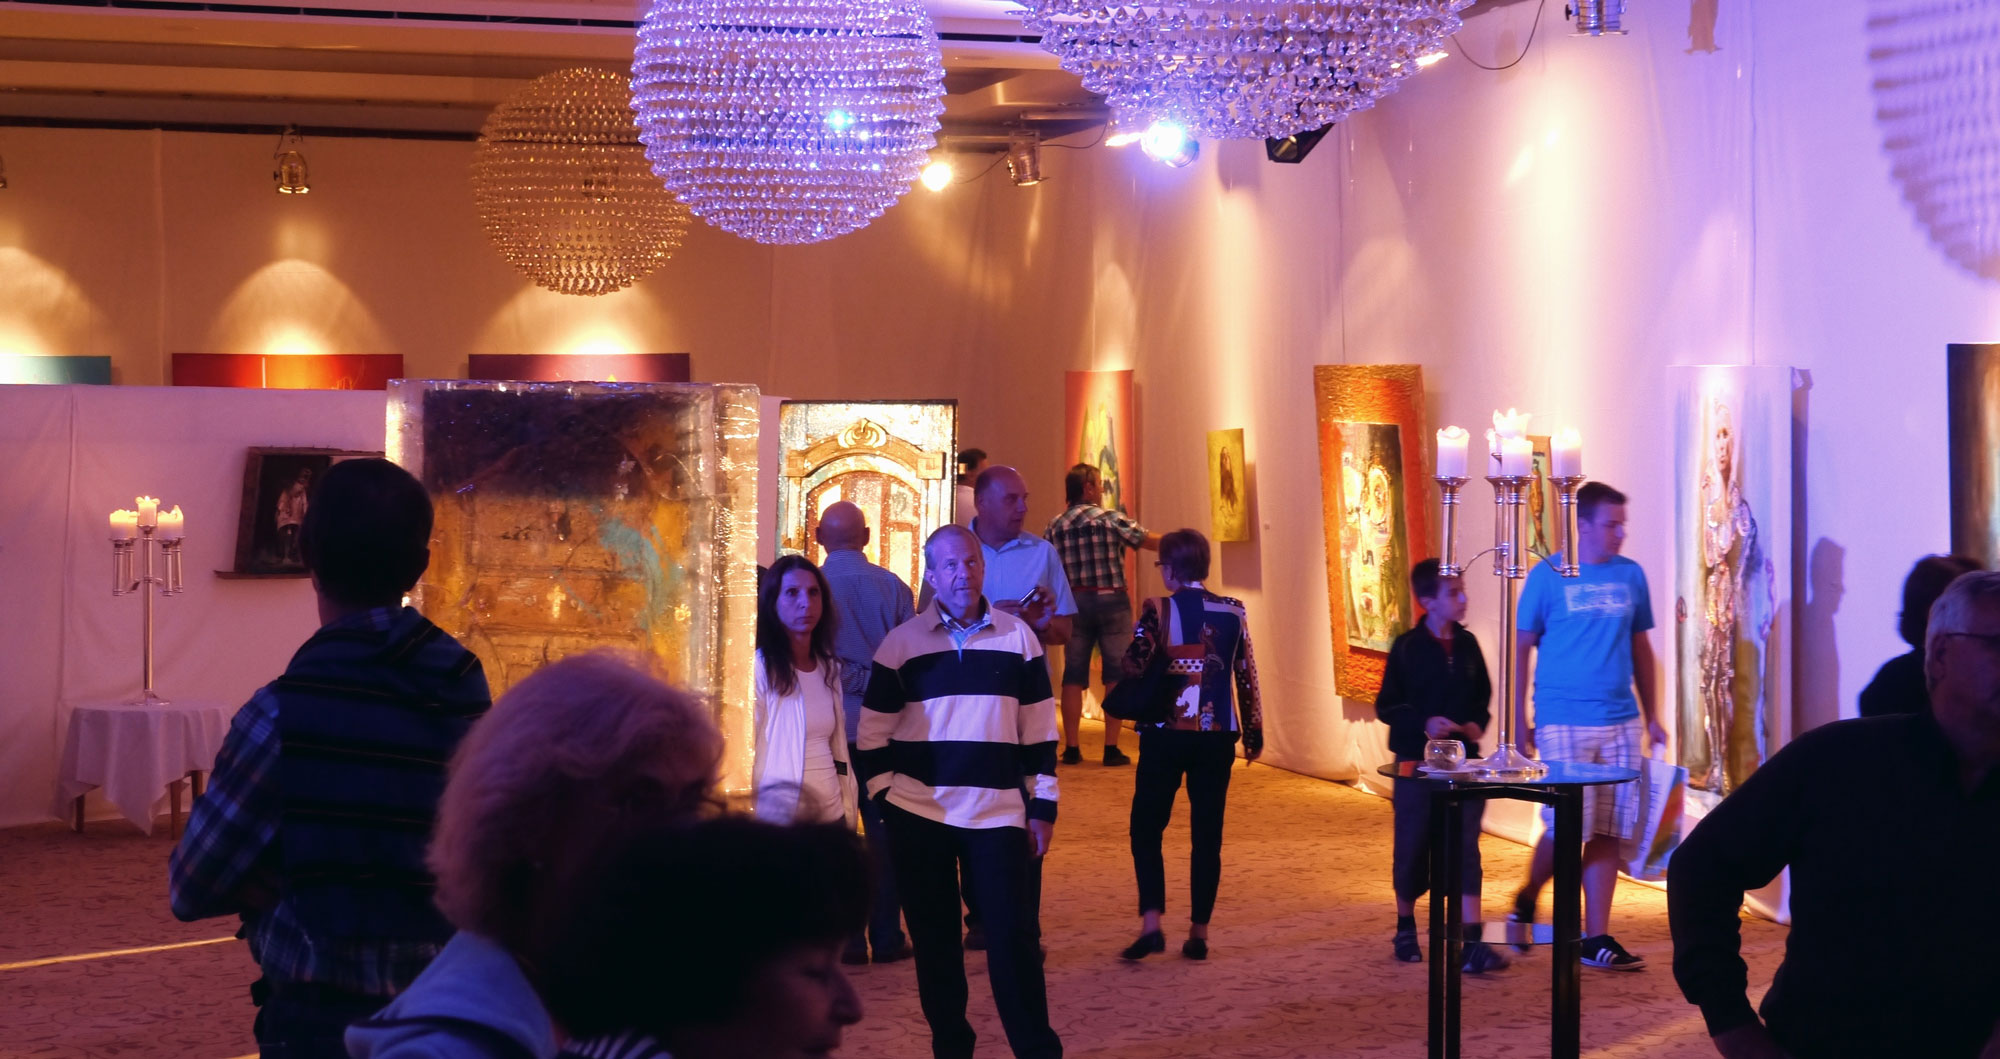 """Solo exhibition at the ballroom of the """"Castle Velden"""" at the Wörthersee, Austria"""